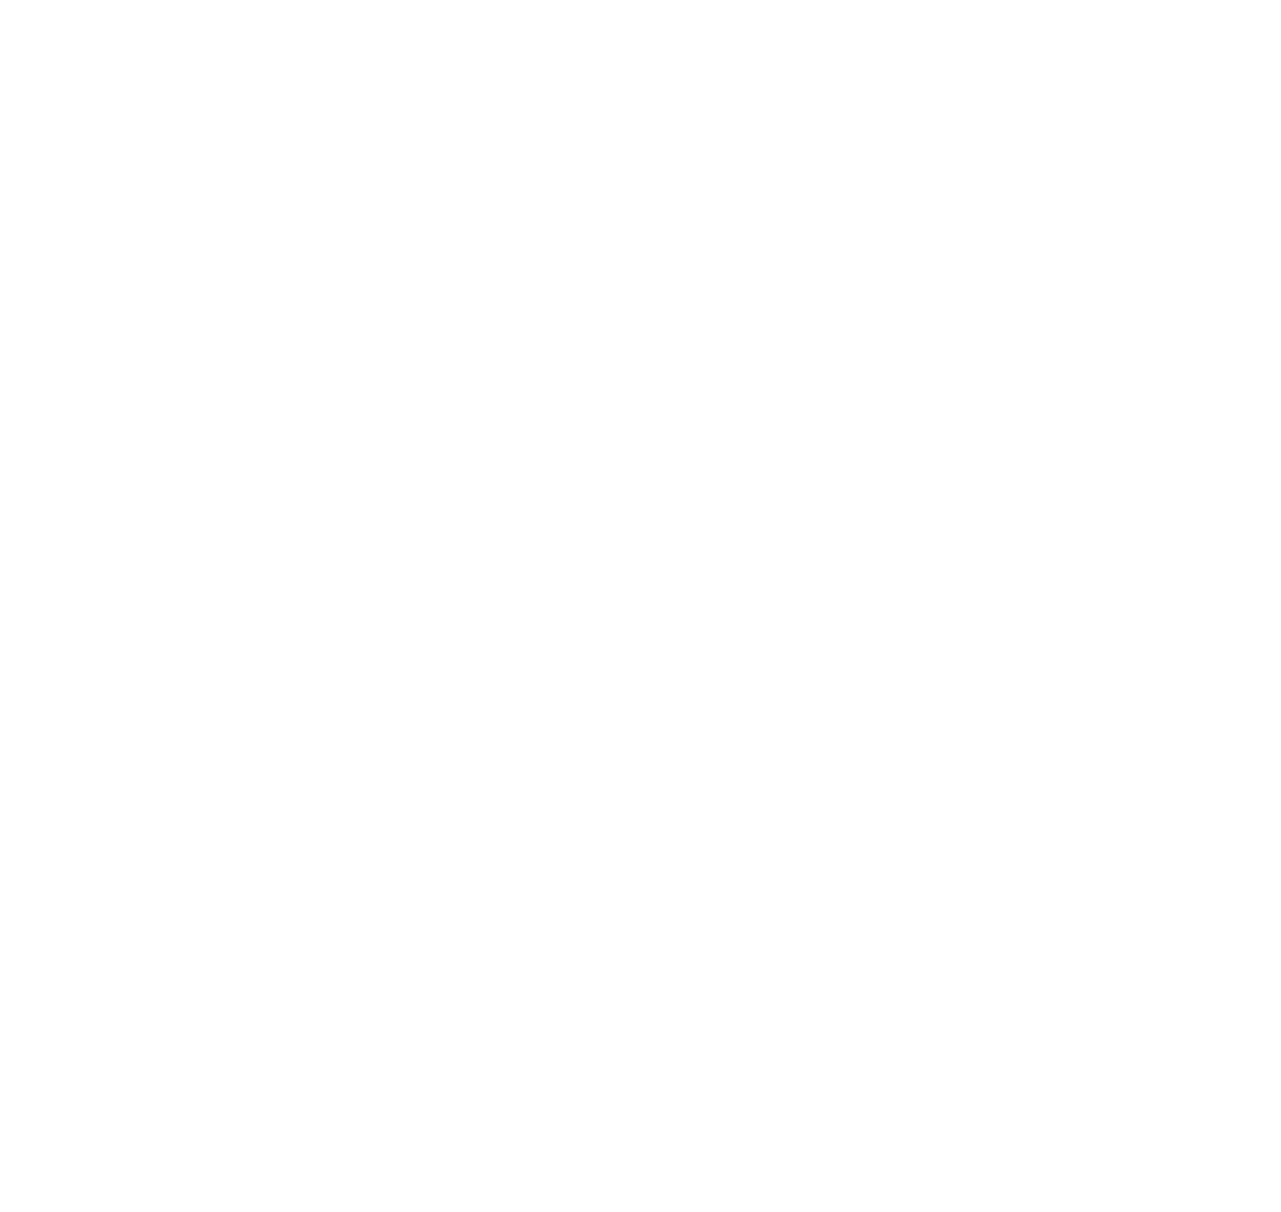 Abbey Badminton Club